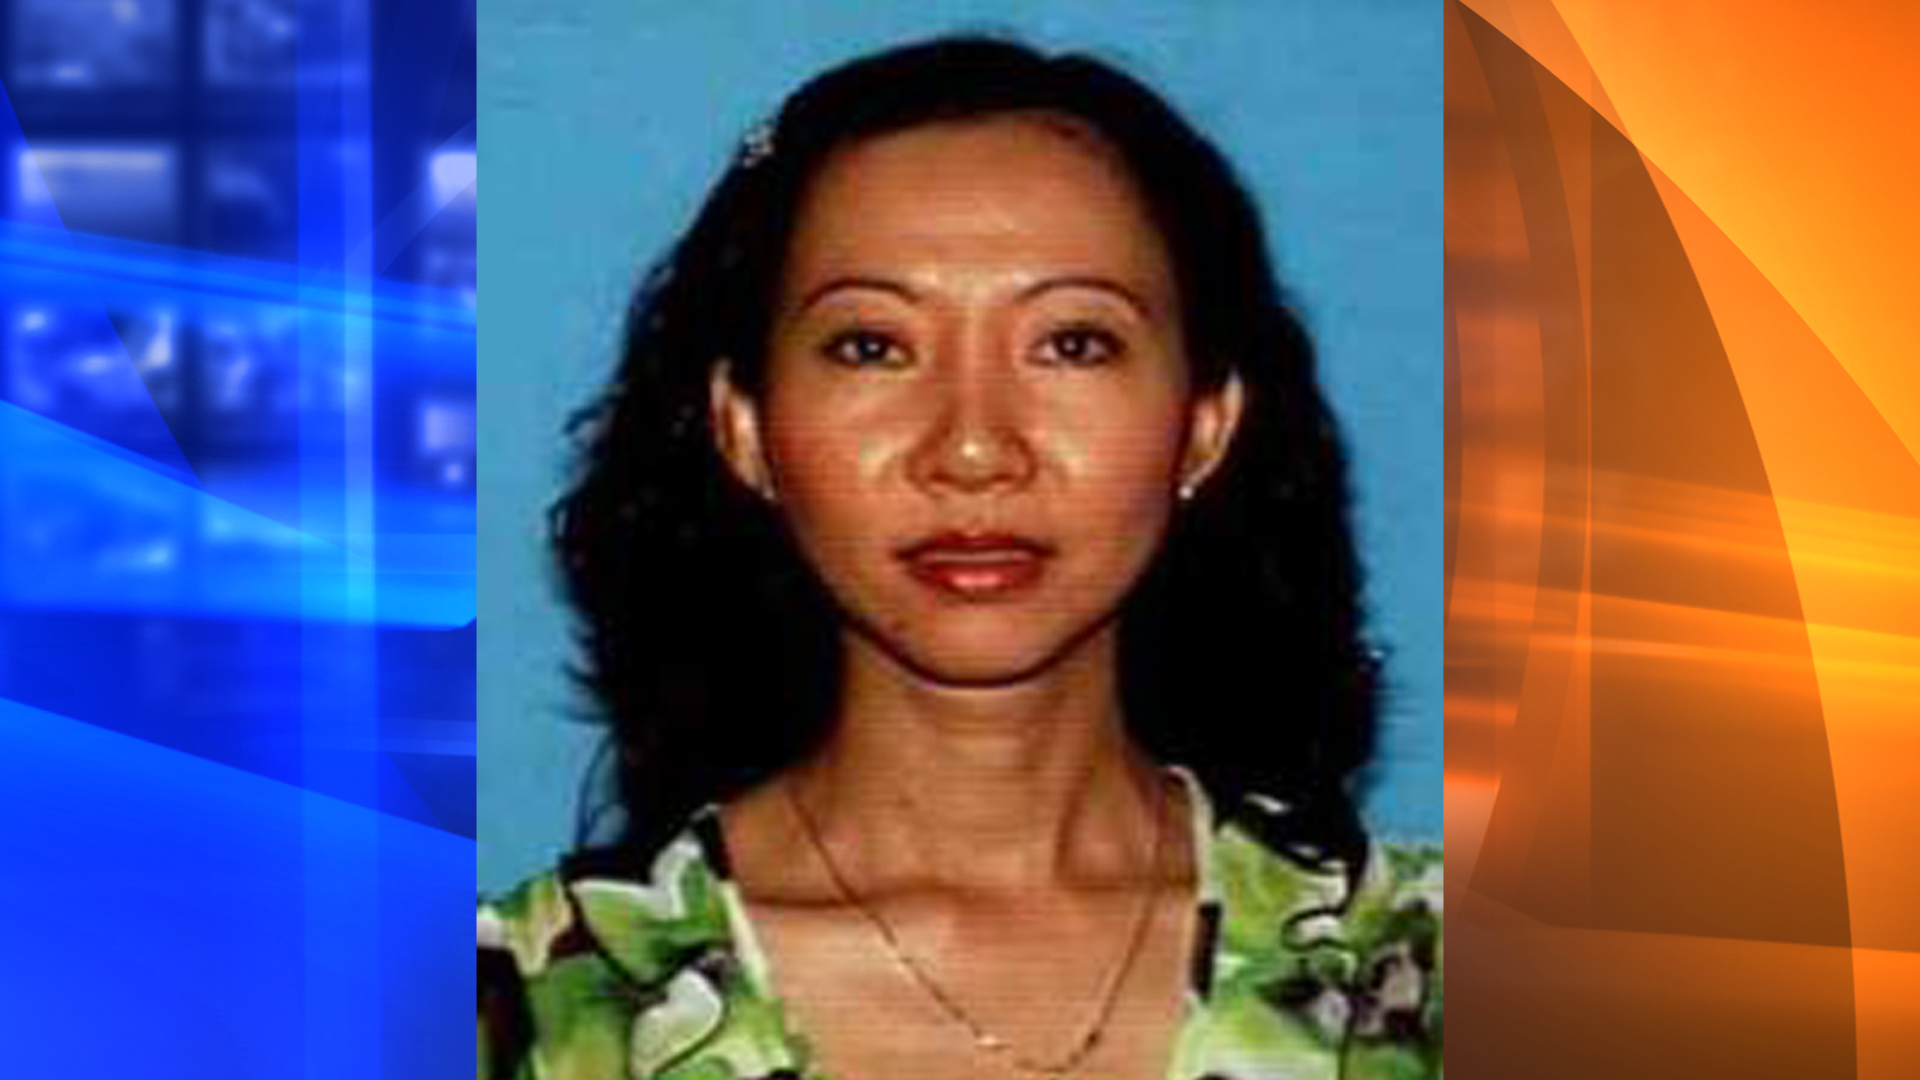 Linda Nguyen, 47, is seen in a photo released by Ontario police on Aug. 22, 2019.